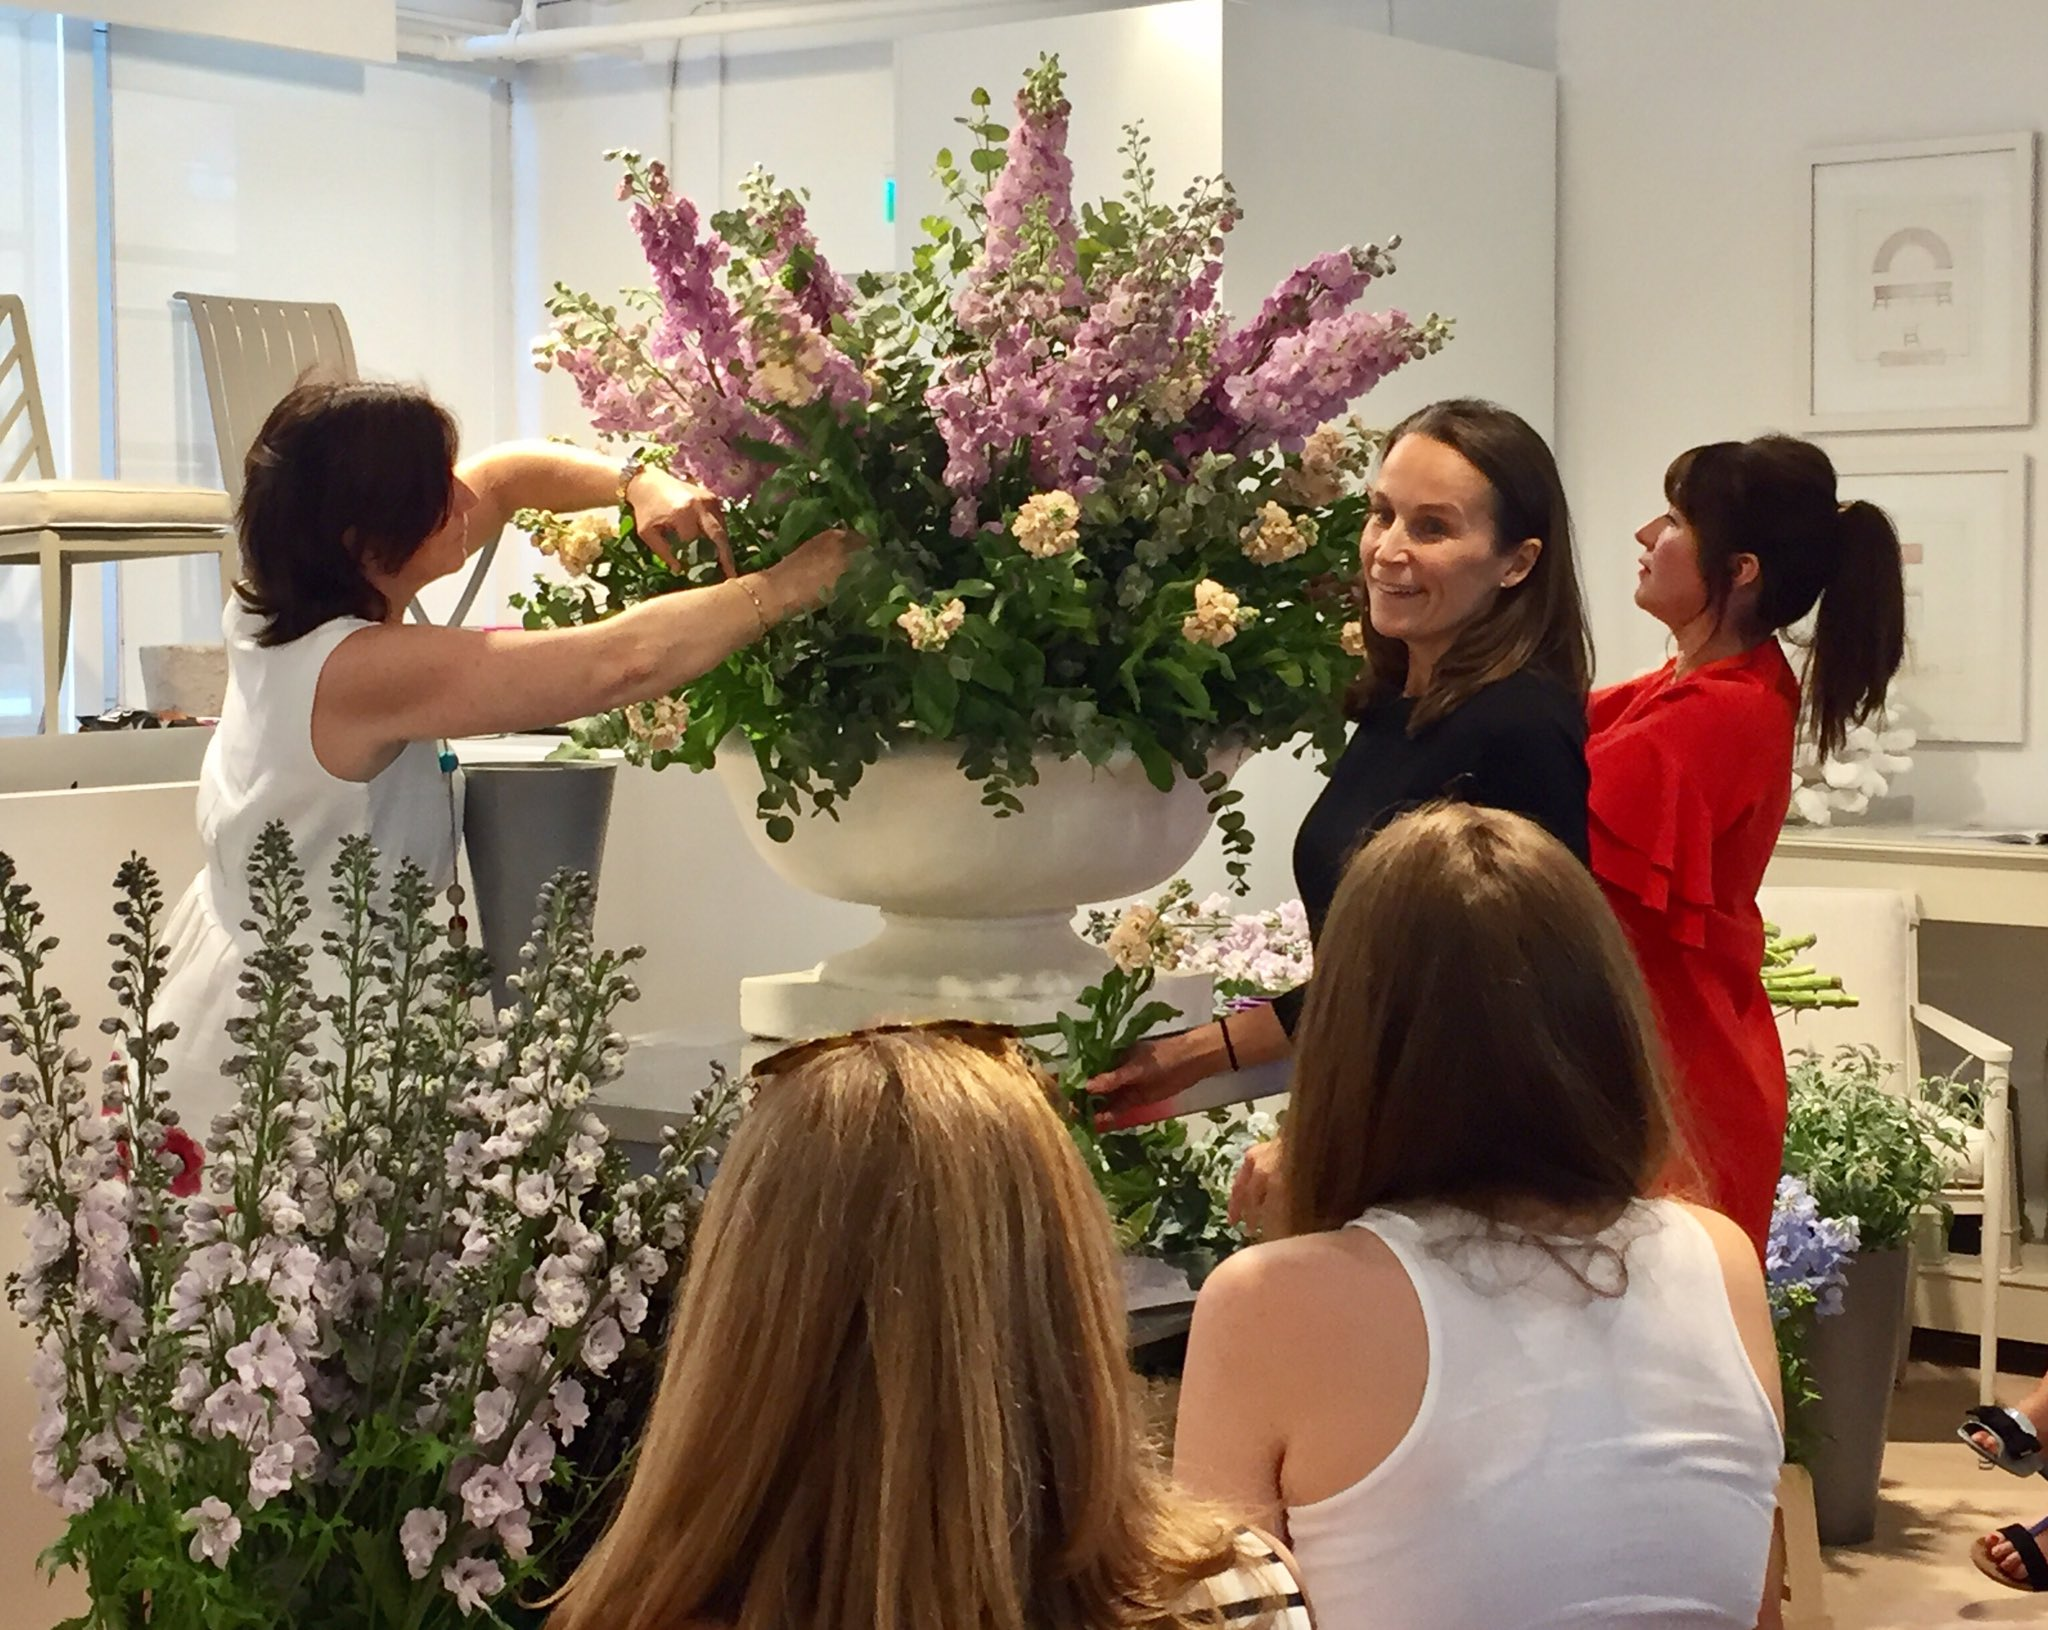 Adding some pale pink delphiniums & apricot stocks to the arrangement with Philippa Craddock #InFullBloomAtDCCH #chelseafringe #floristry https://t.co/GrePcR0hZG